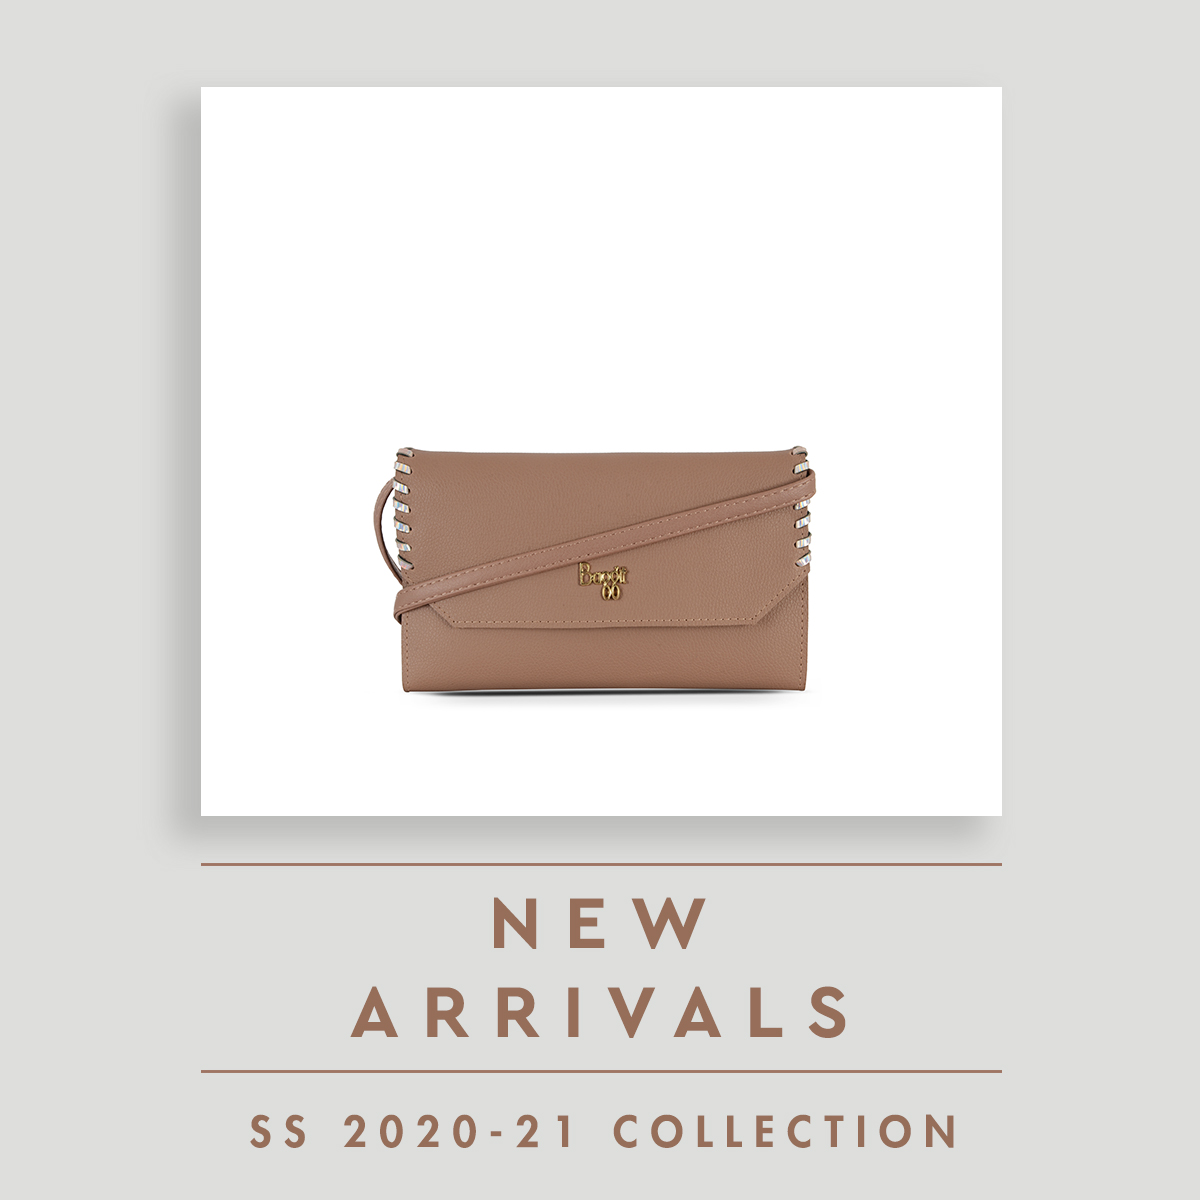 Soft colours and intertwined edges - get your hands on to the latest wallet-slings designed for ladies now by Baggit. #wallet #slings #newarrivals #madeinindia #baggit https://t.co/EuayUKVsa6